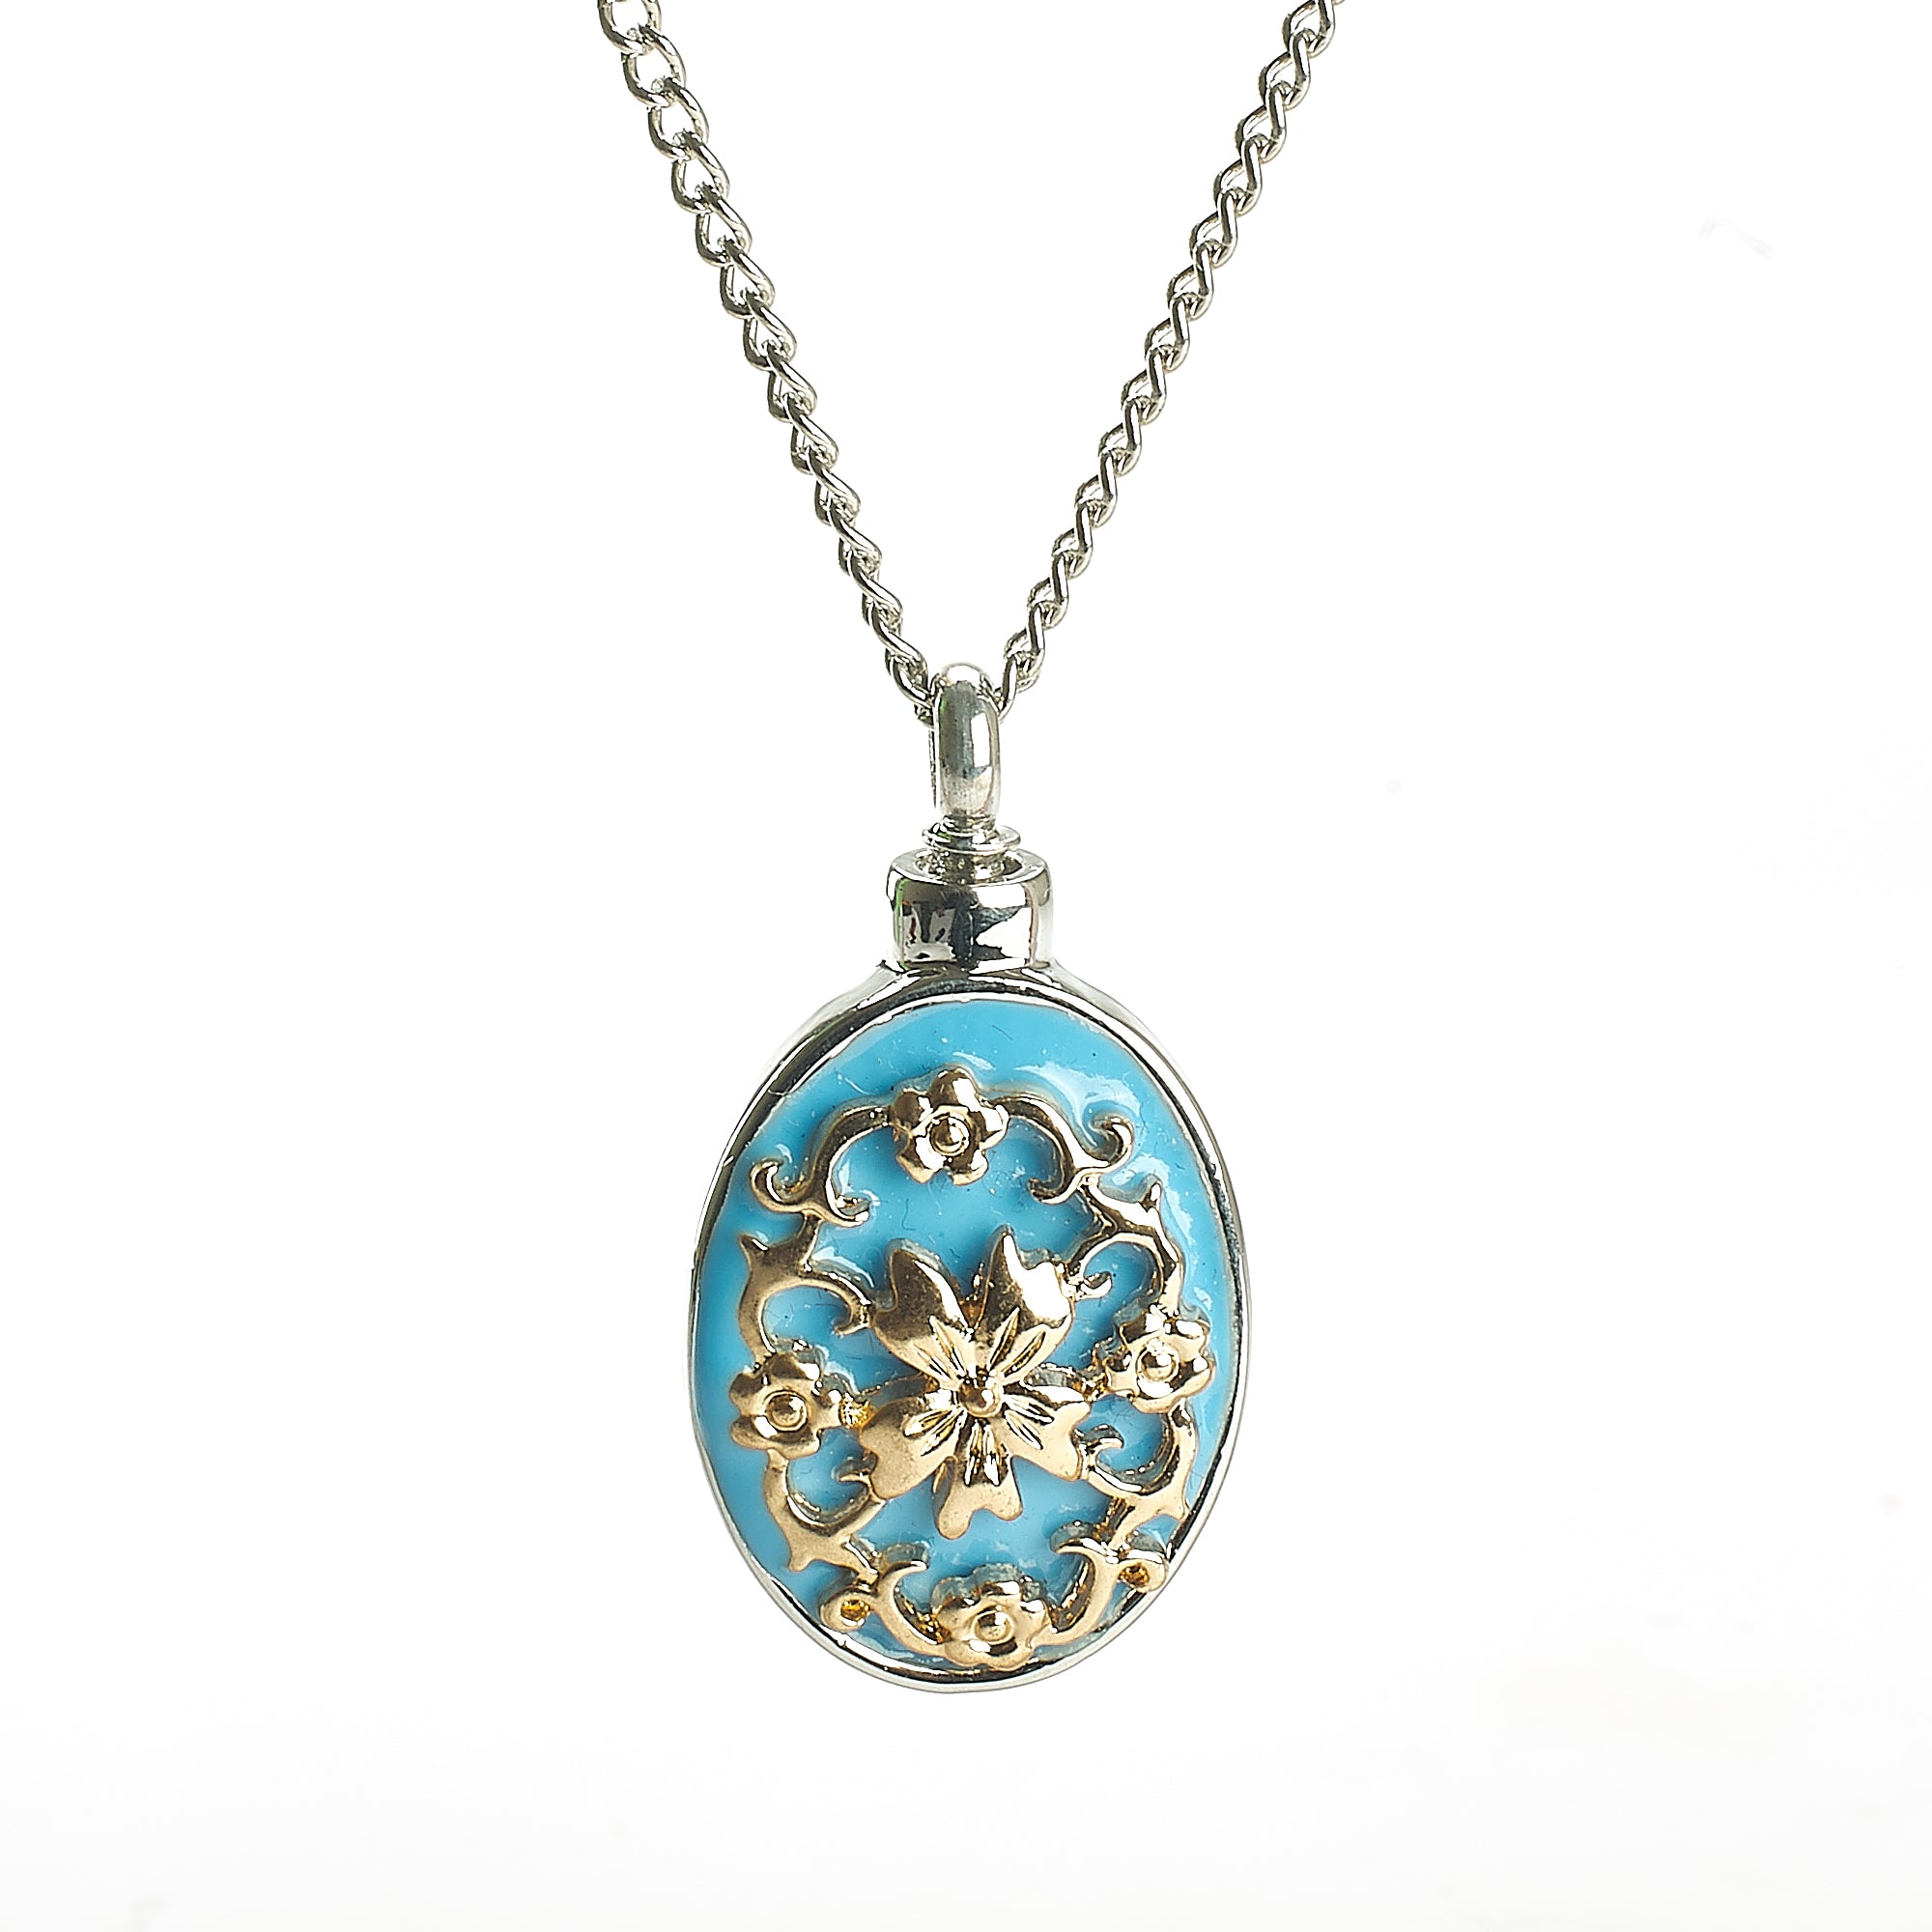 Cremation Pendant - Oval Decorative Piece Blue, Gold, Silver